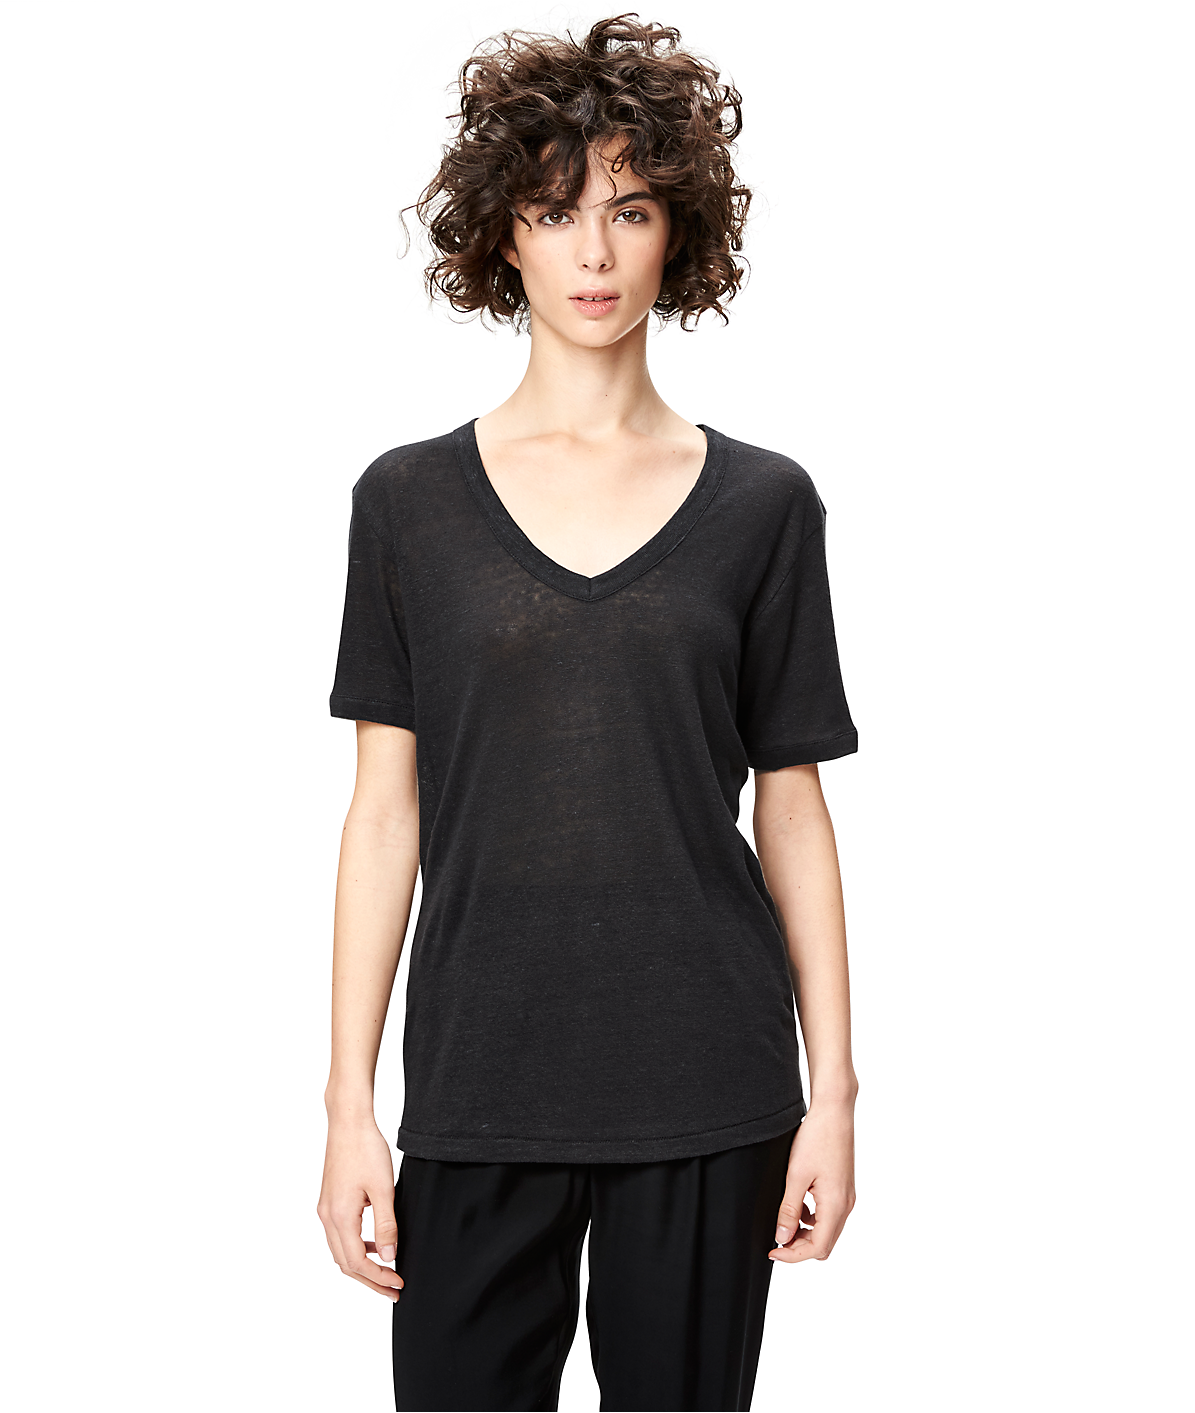 Linen V-neck T-shirt S1161001 from liebeskind